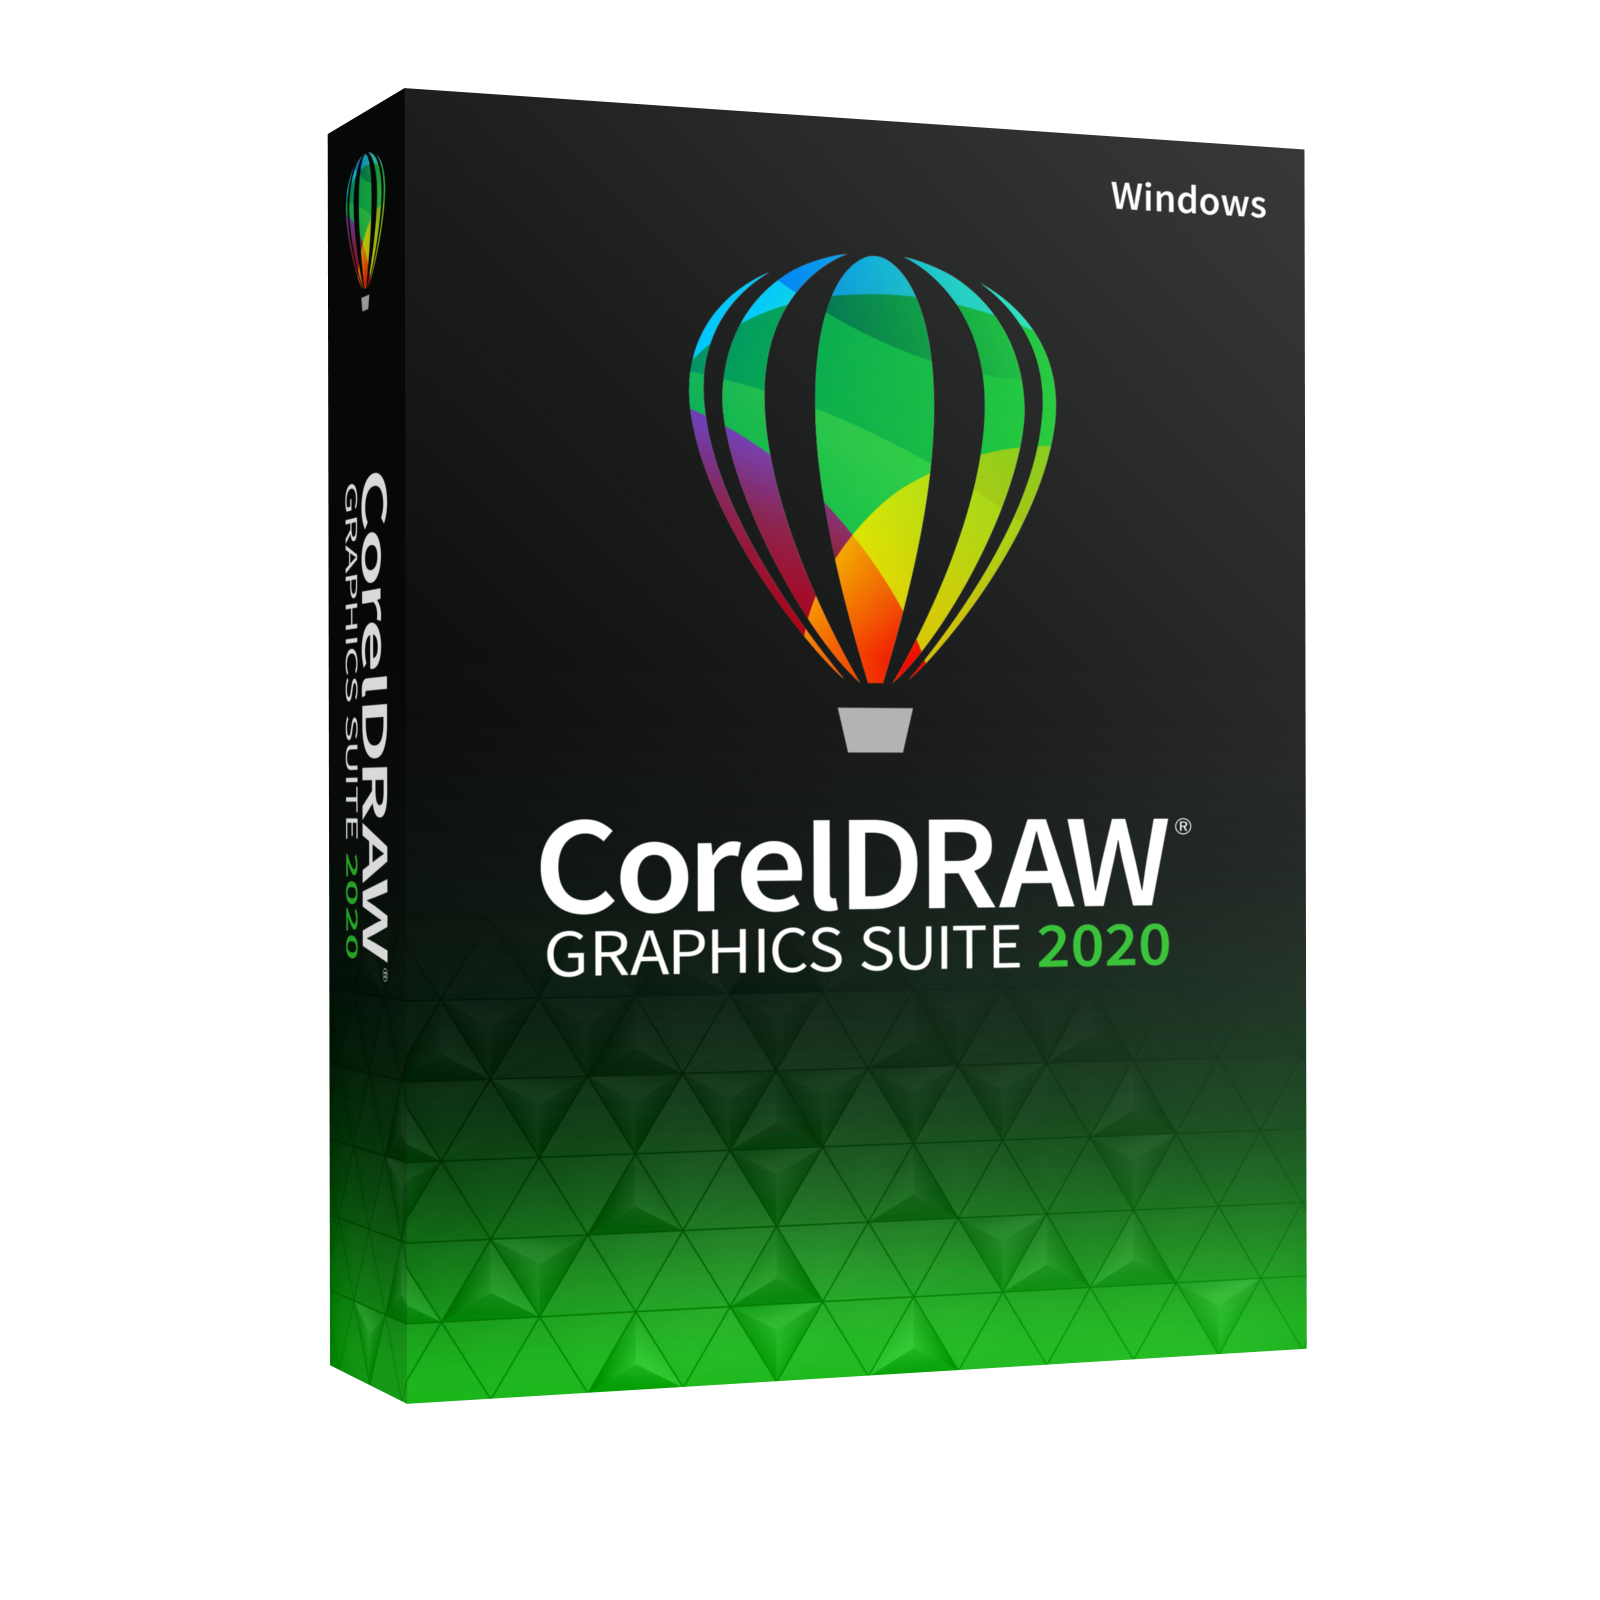 corelDRAW-Graphics-Suite-2020-boxed-windows.png